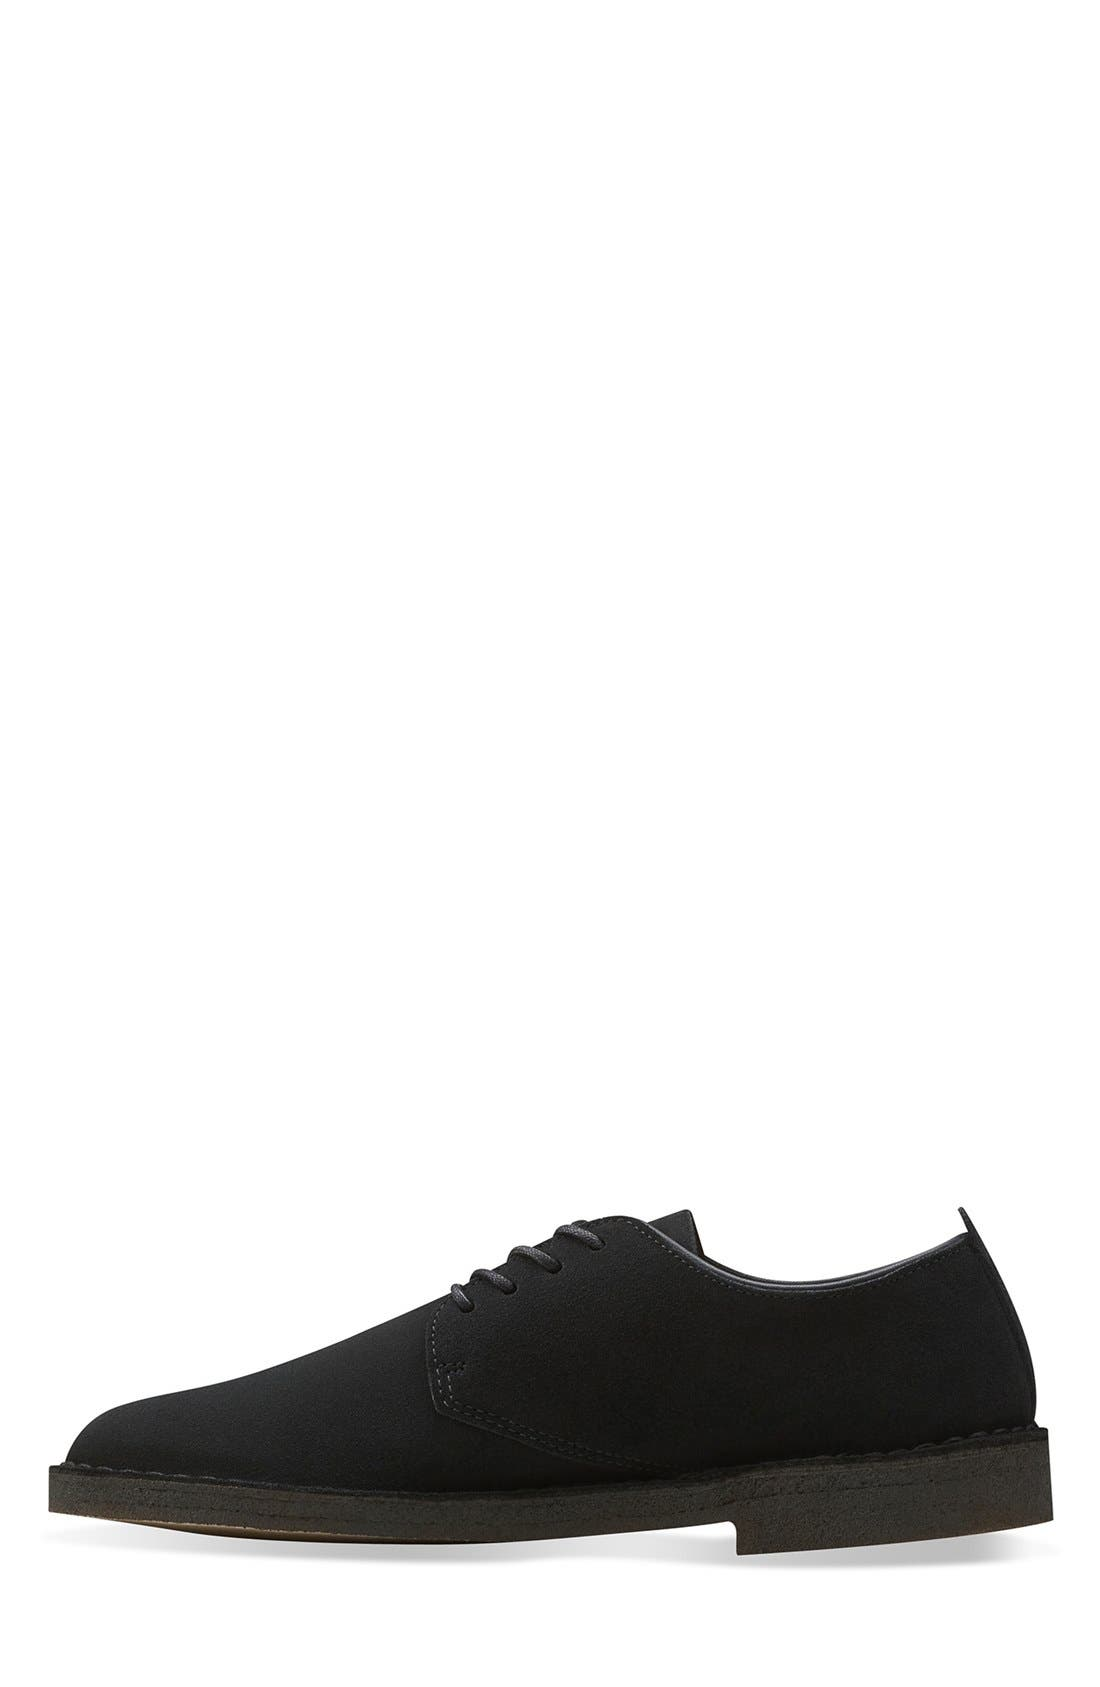 'Desert London' Plain Toe Derby,                             Alternate thumbnail 2, color,                             BLACK SUEDE